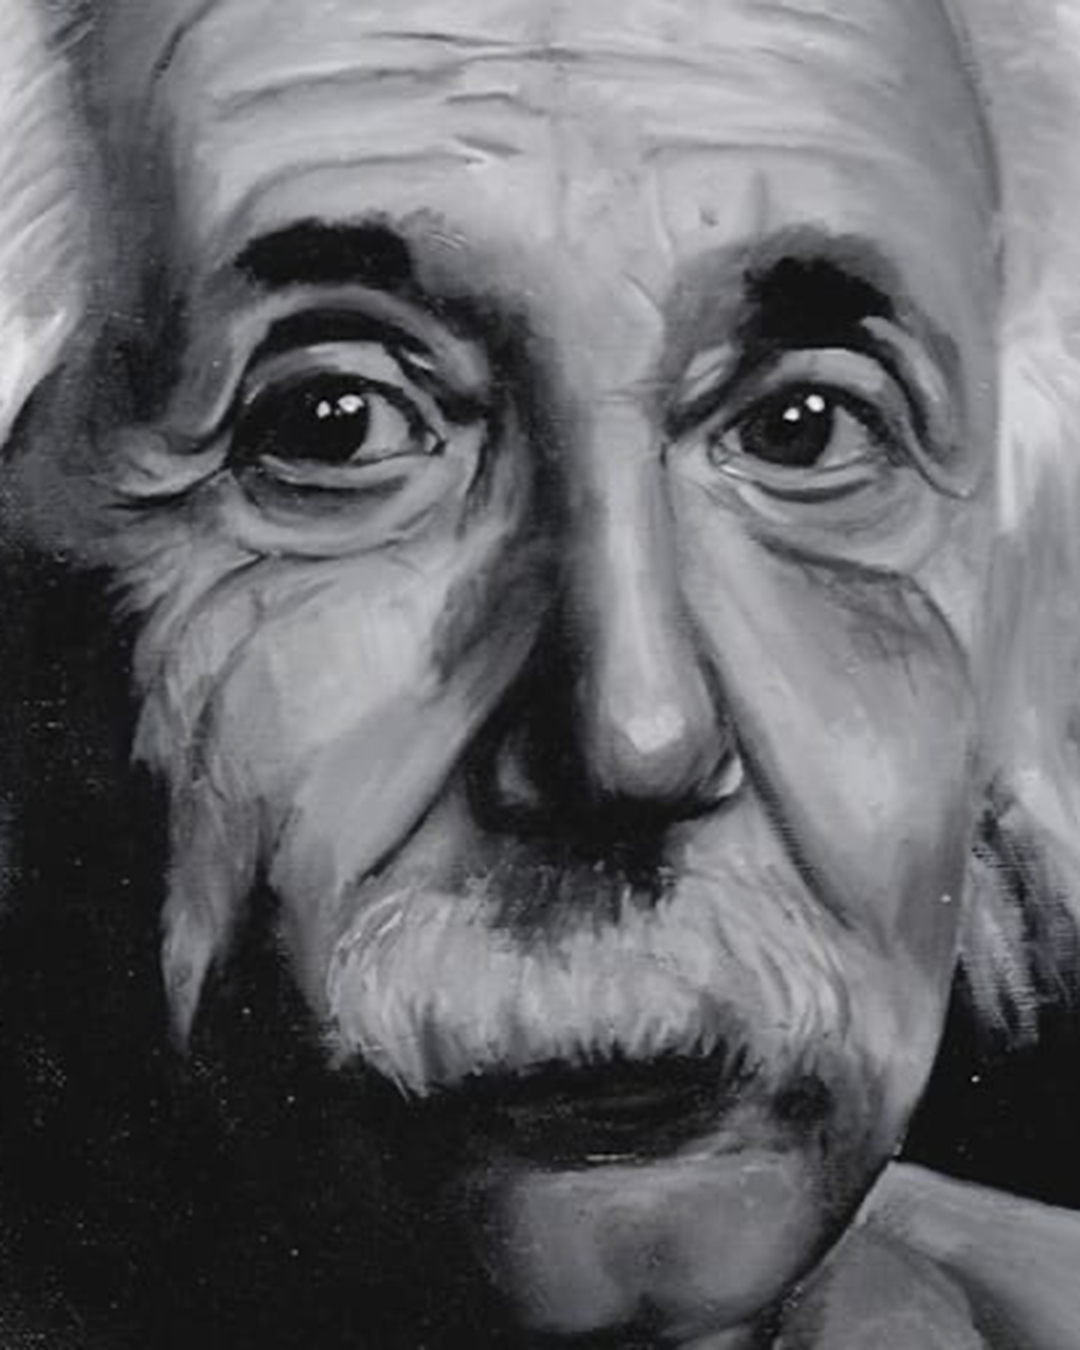 OIL - EINSTEIN